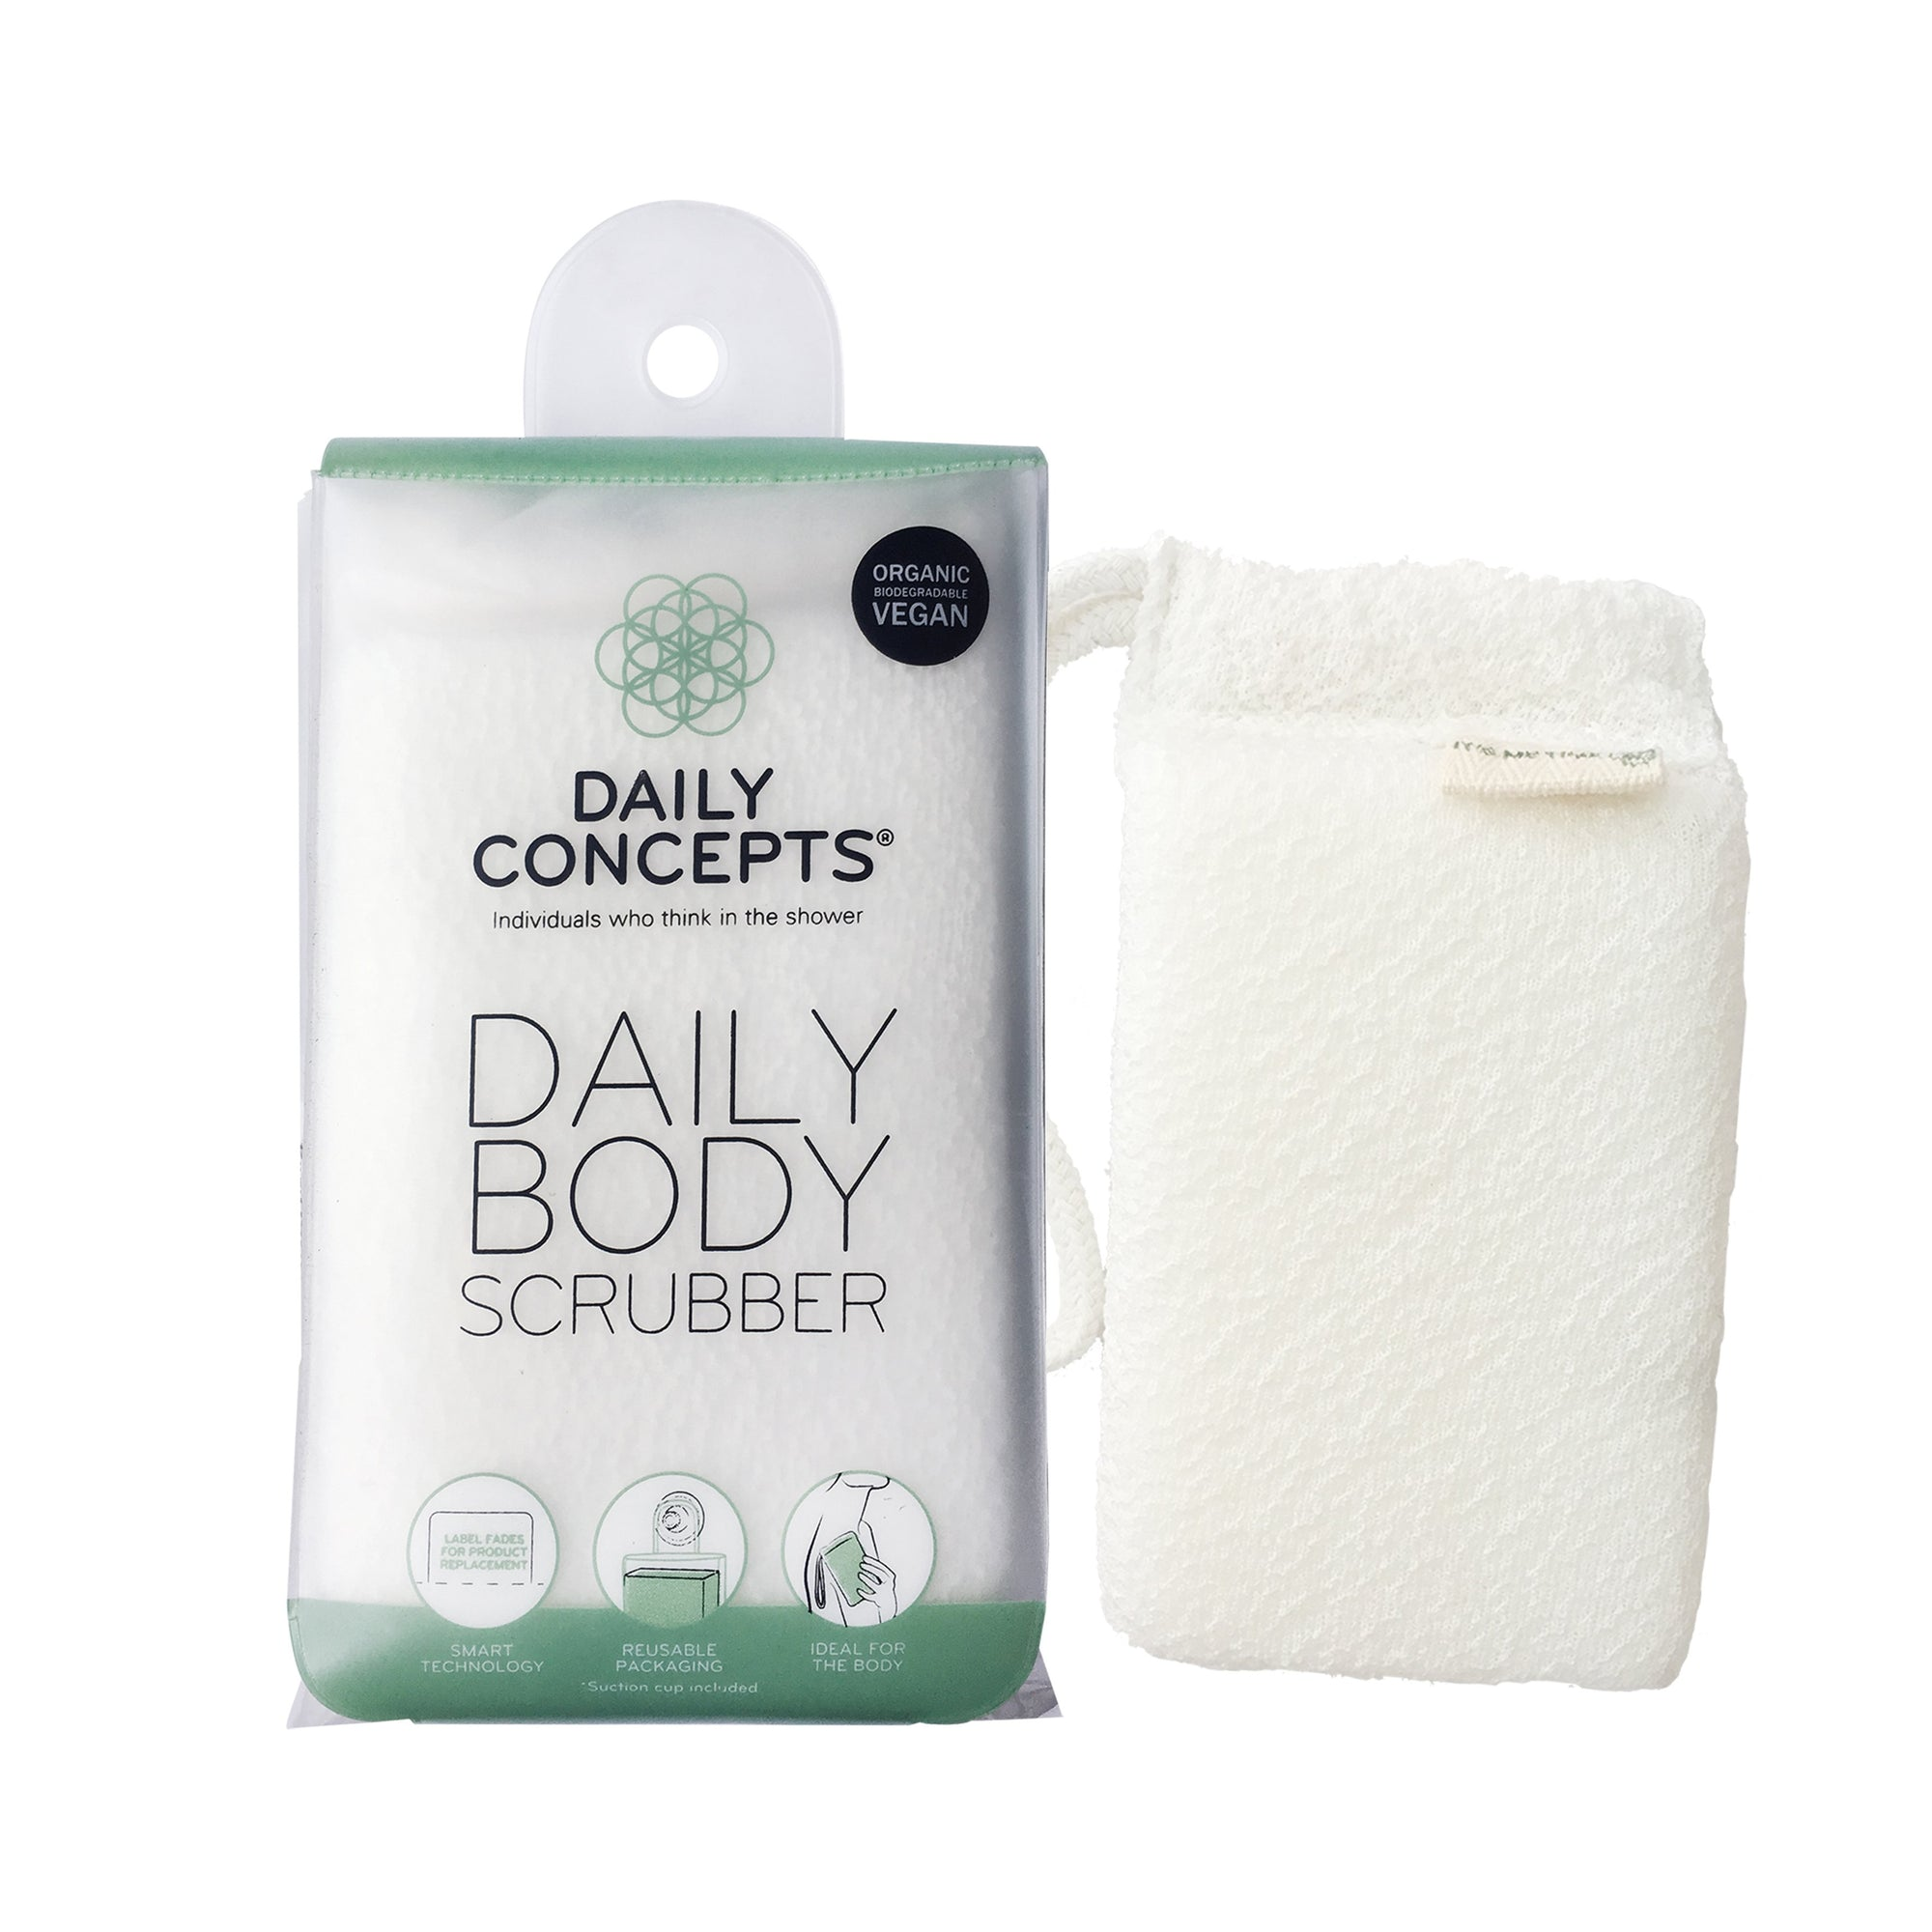 Daily Concepts - Daily Body Scrubber